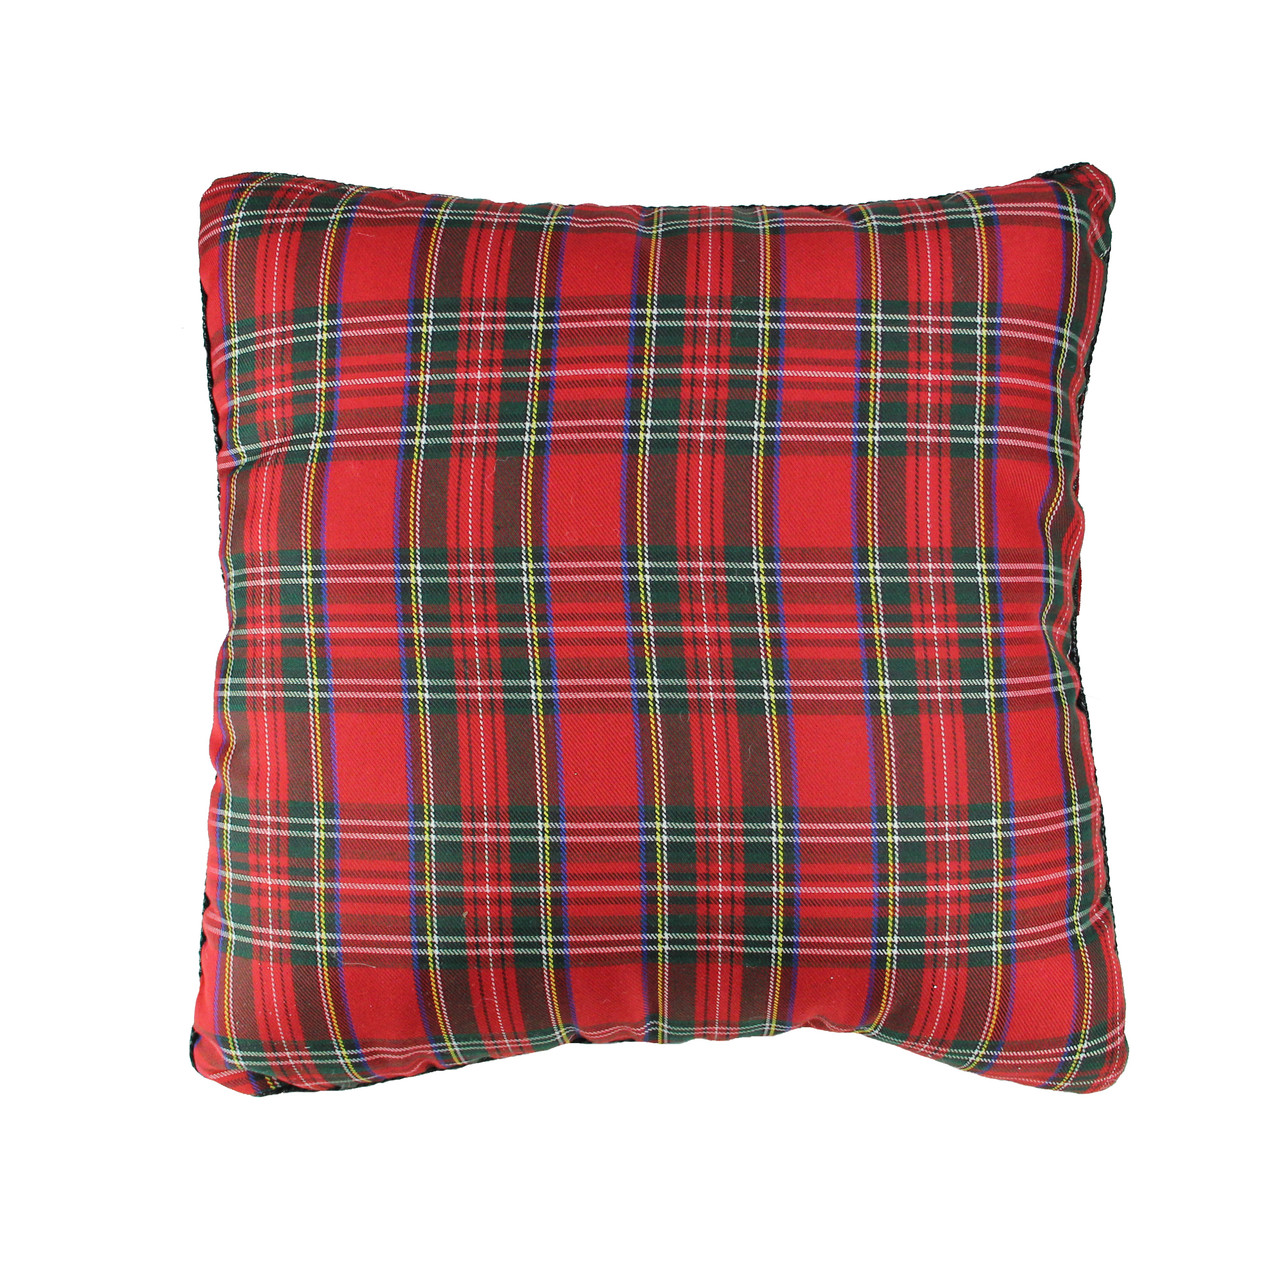 15 5 Red Green Square Textured Tartan Plaid Velvet Christmas